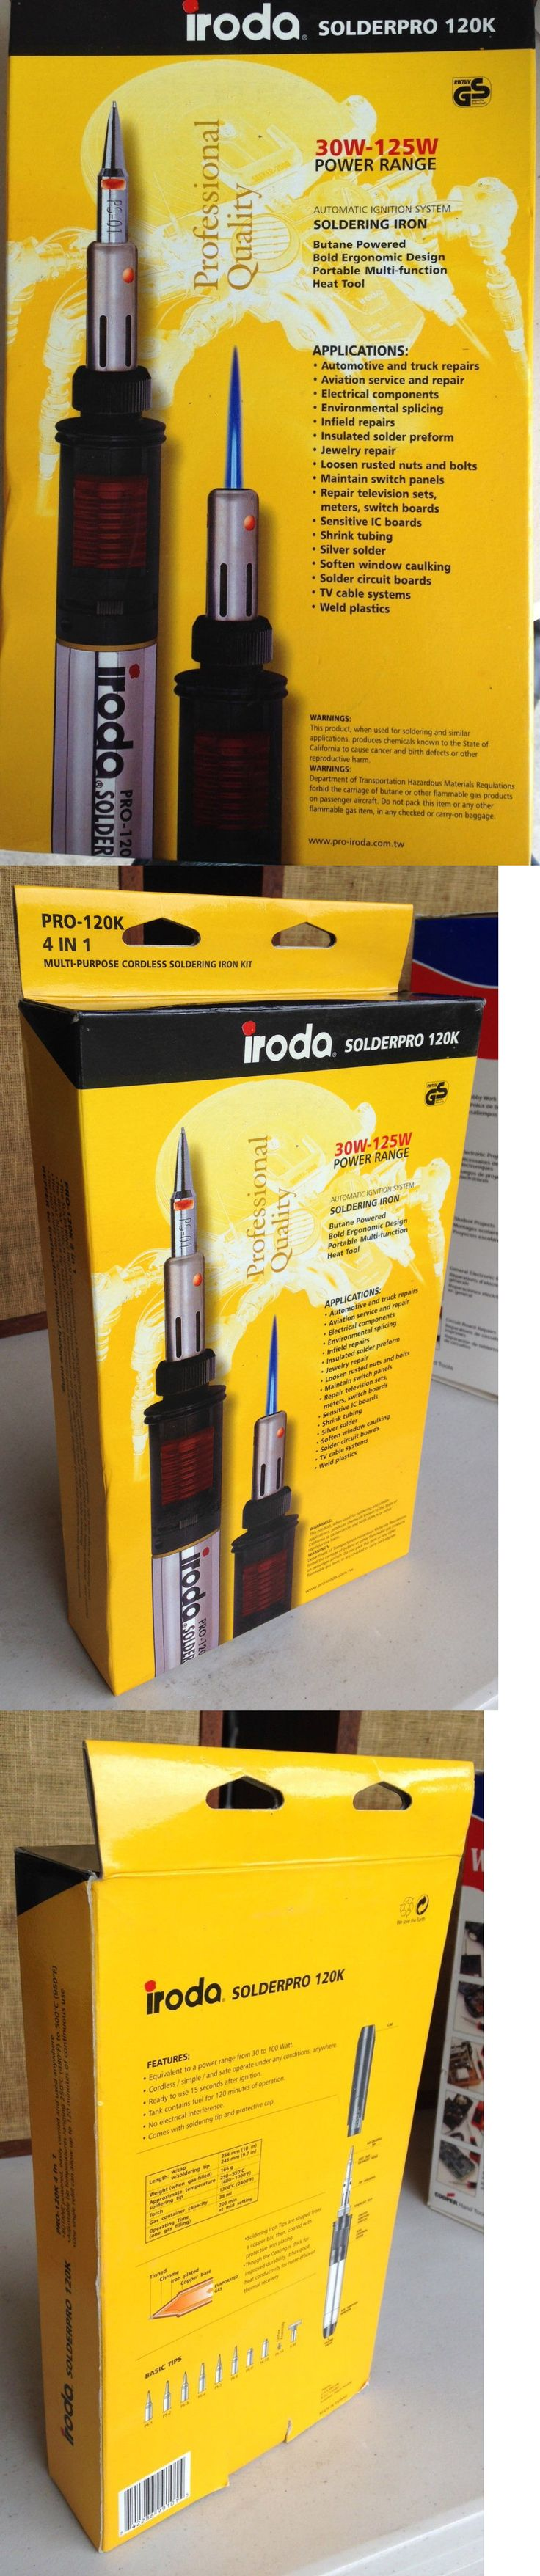 Welding and Soldering Tools 46413: Iroda Solderpro 120K Butane Gas 30W-120W Soldering Iron Kit - Never Used! New -> BUY IT NOW ONLY: $60 on eBay!